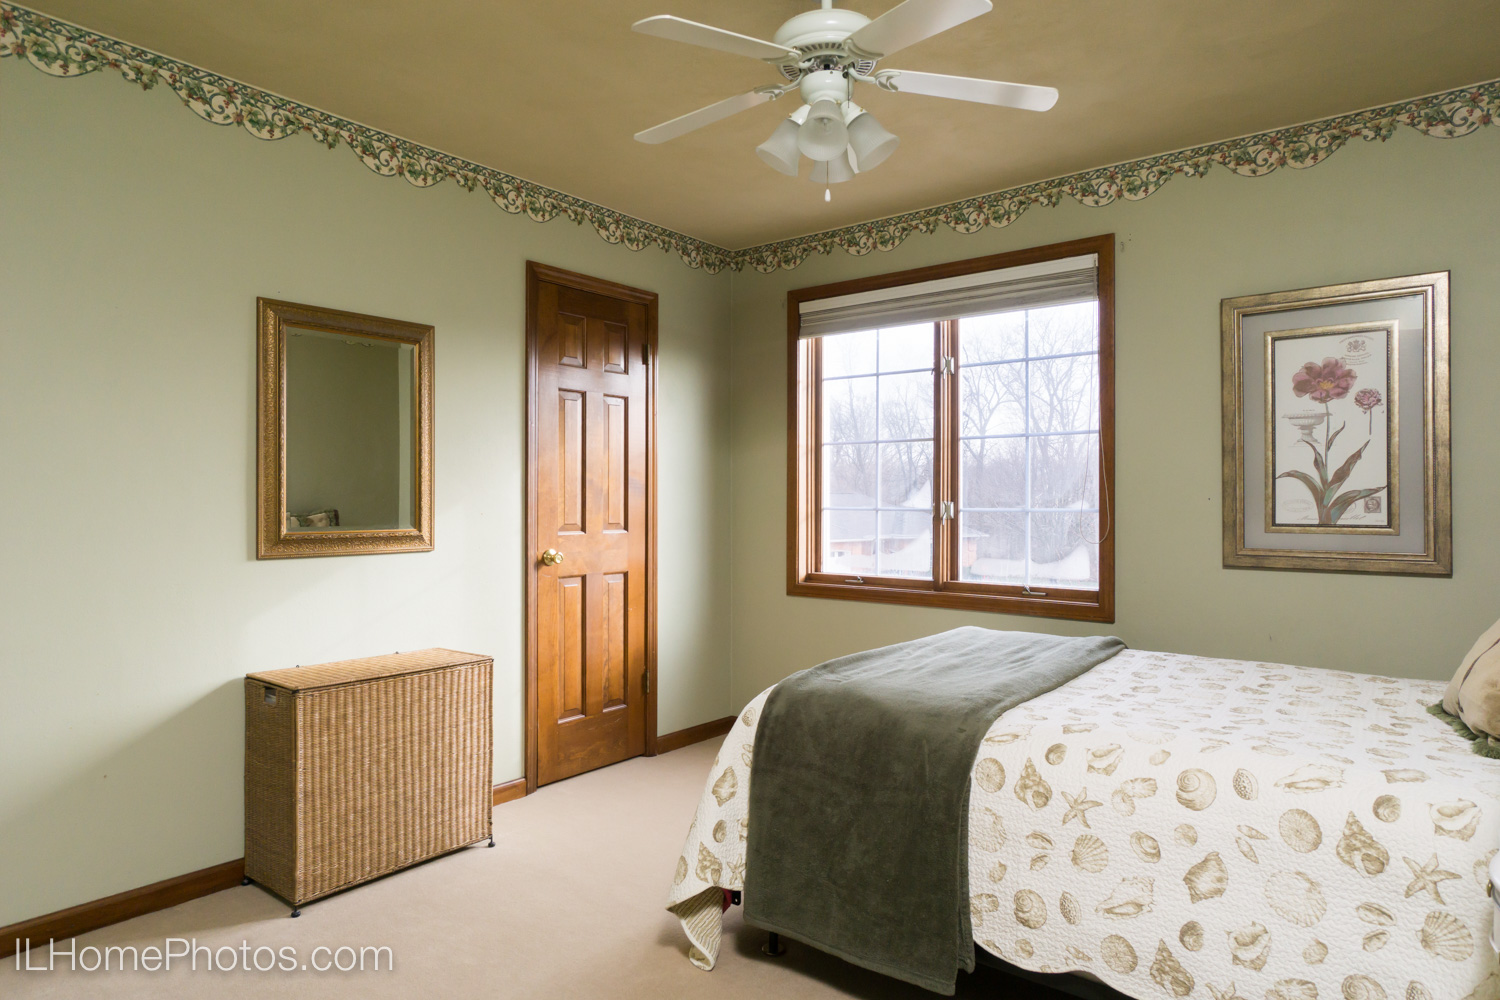 Interior bedroom photograph for real estate in Dunlap, IL :: Illinois Home Photography by Michael Gowin, Lincoln, IL